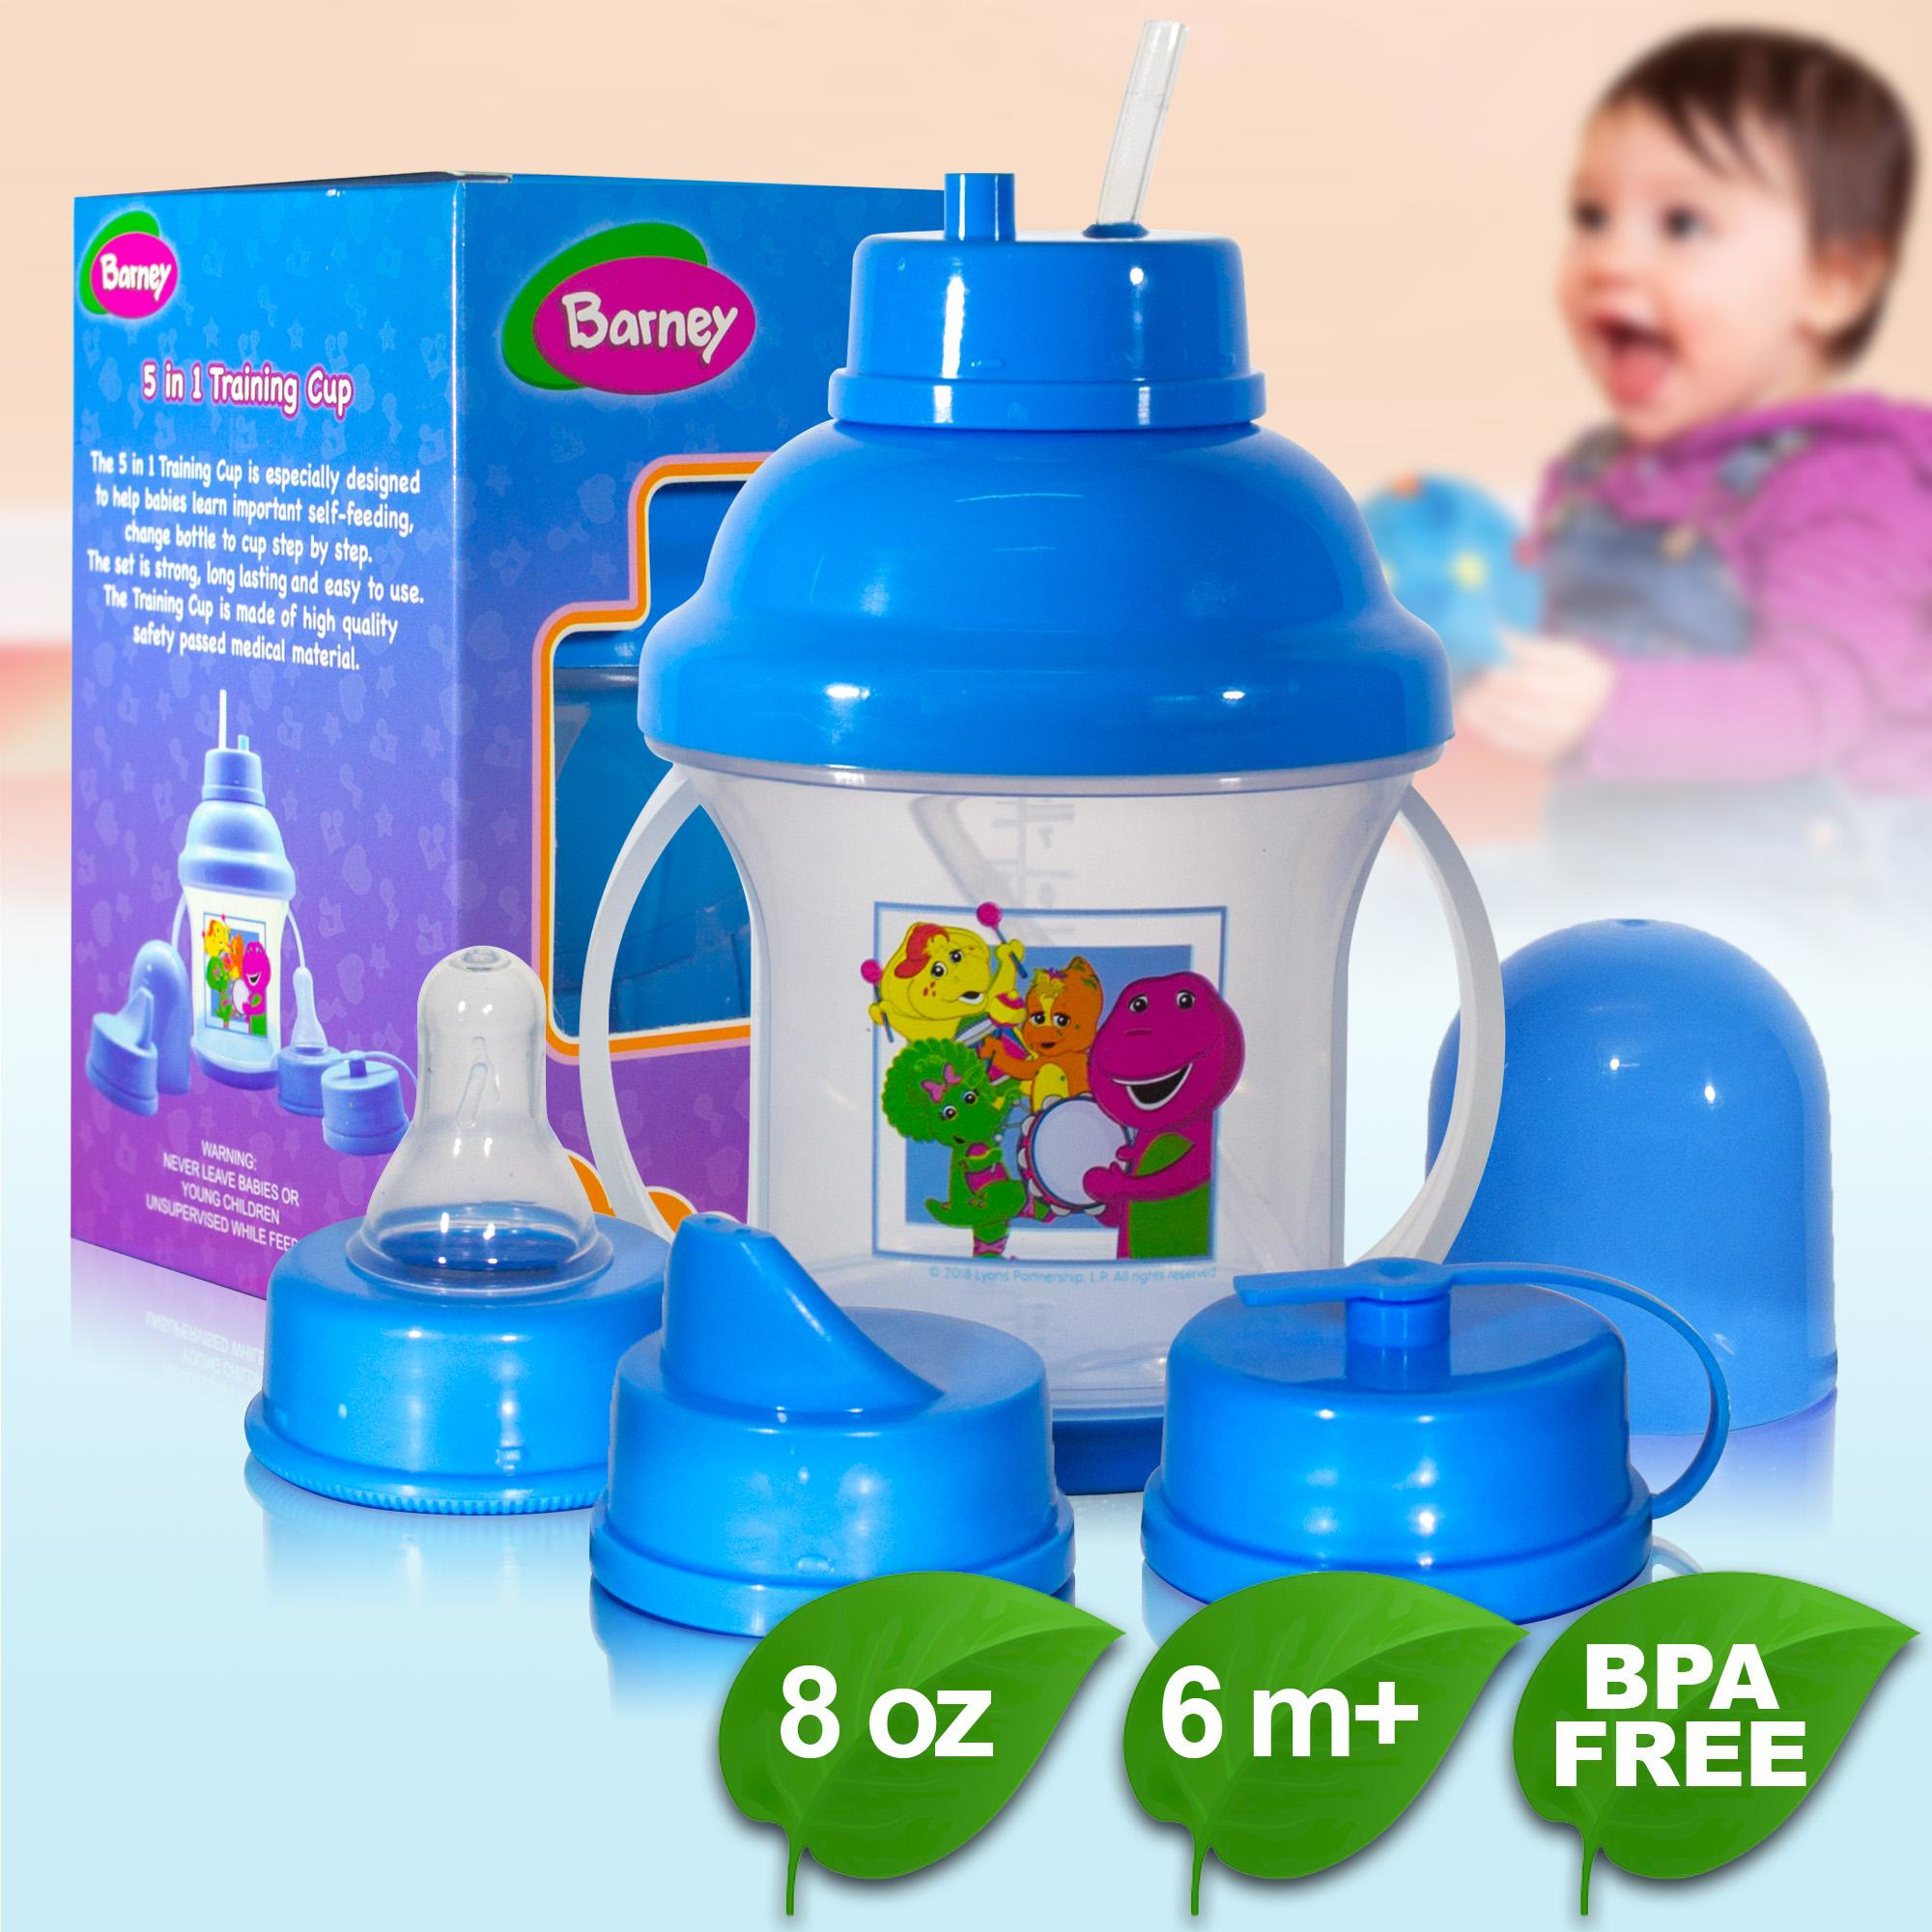 Feeding Cups for sale - Baby Feeding Cup online brands, prices & reviews in Philippines | Lazada.com.ph